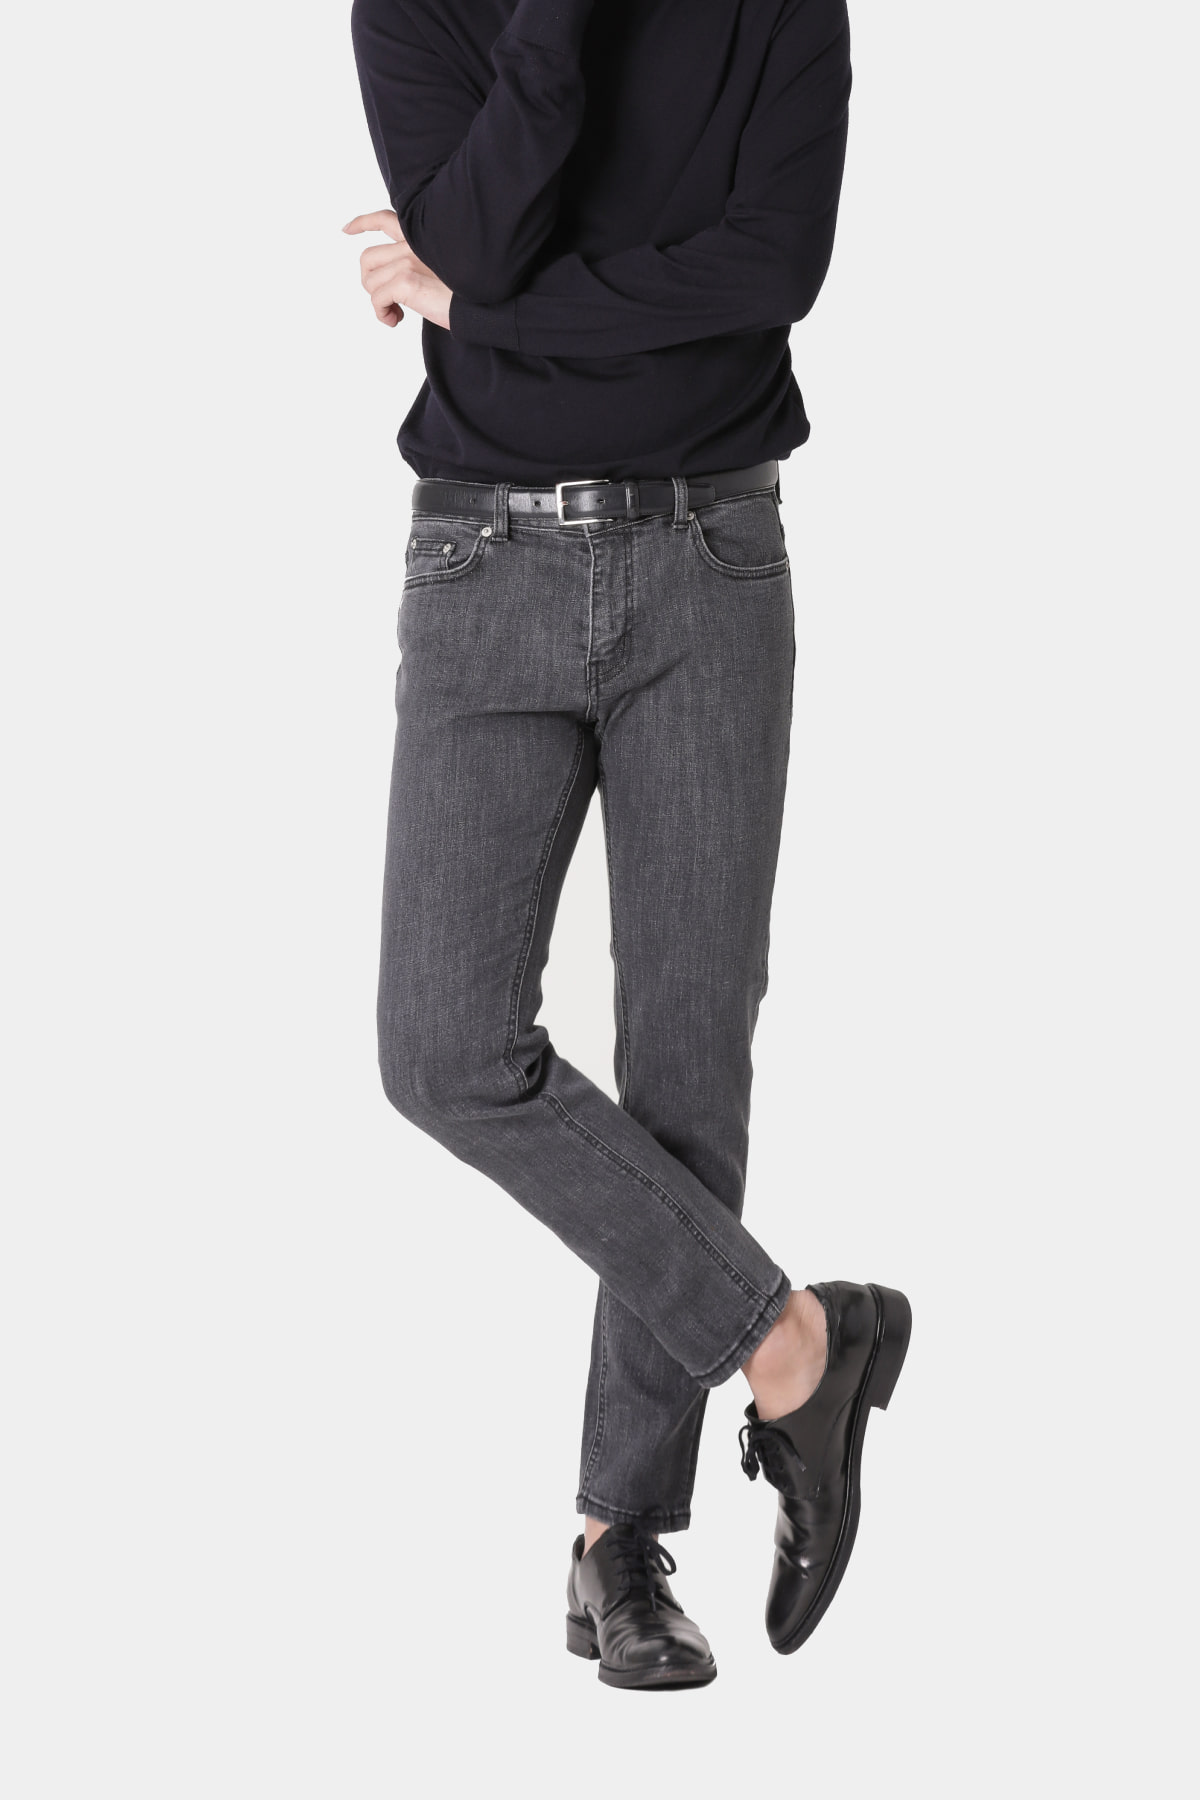 #0167 charcoal grey washed slim crop fit